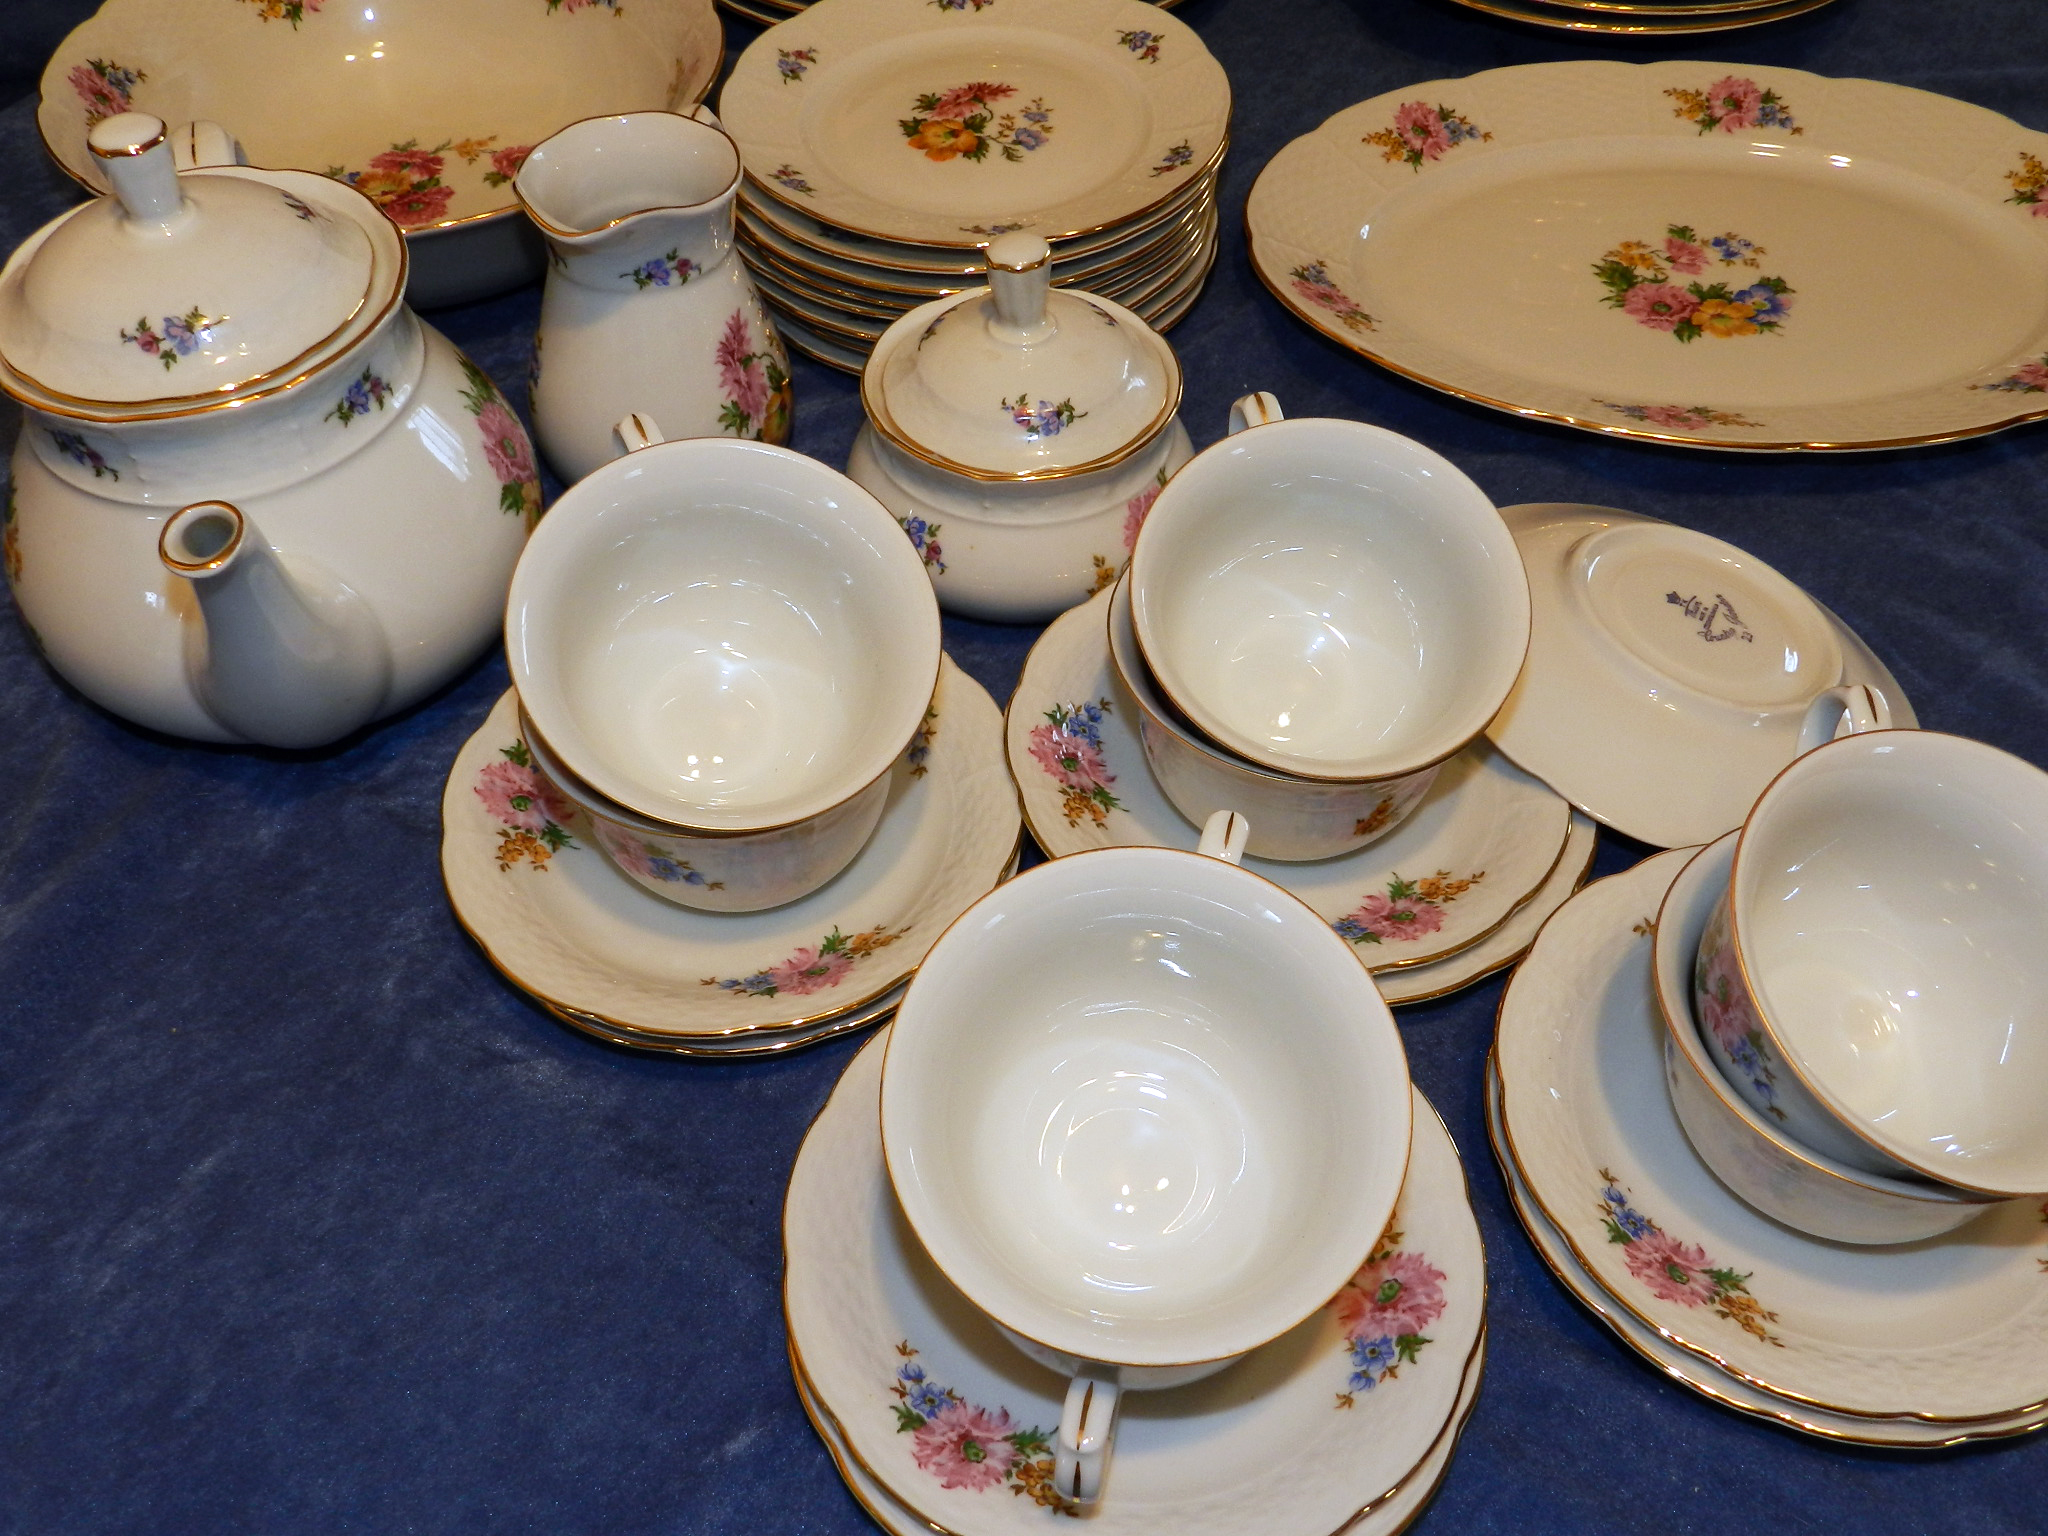 $187 - Classic Thun Dinnerware Setting for 8 - Country Garden